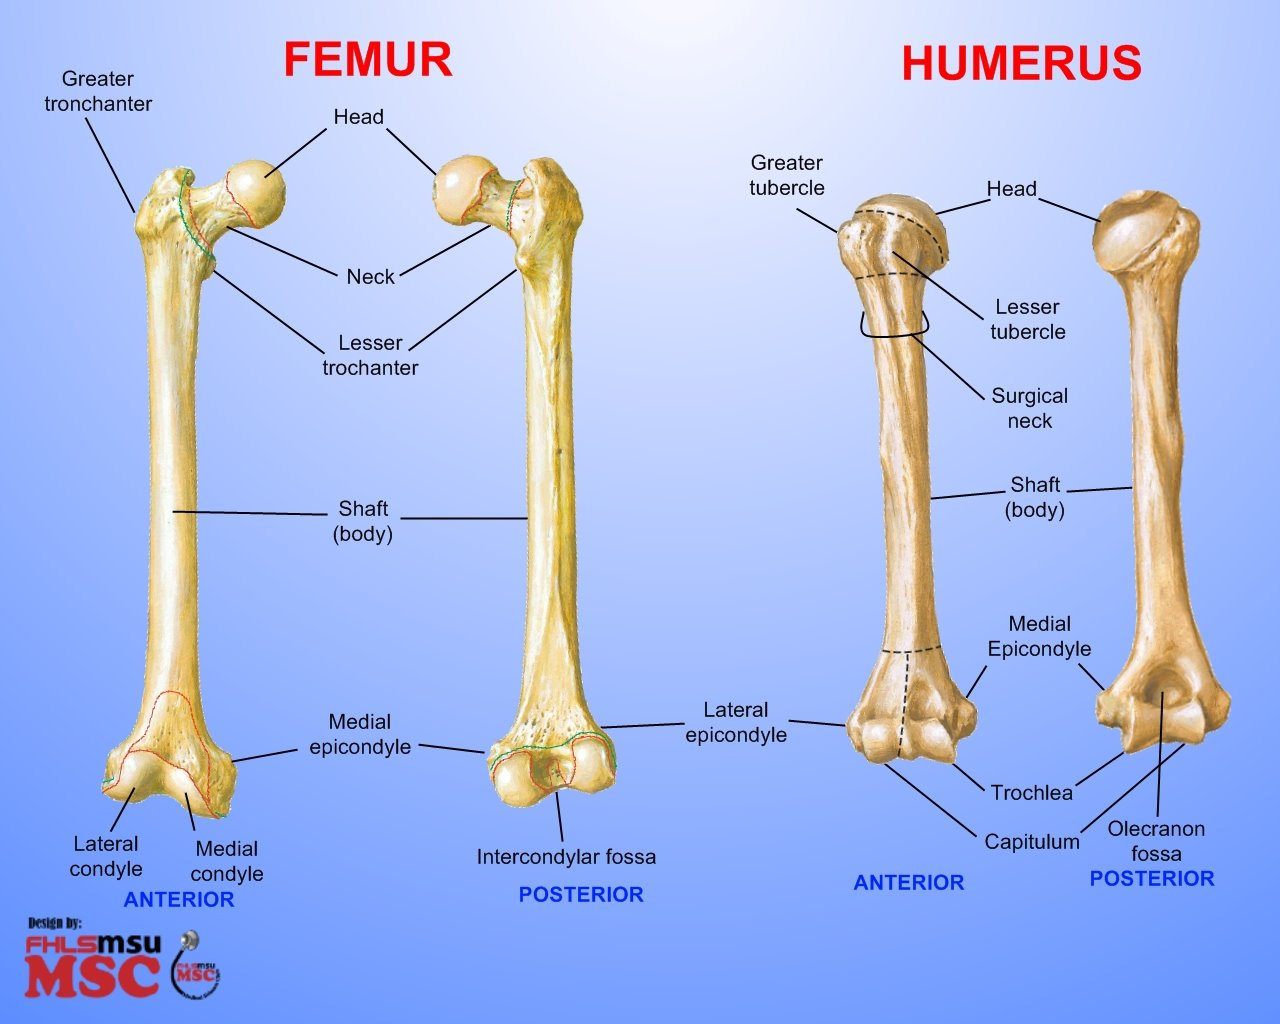 Differences between femur & humerus elements